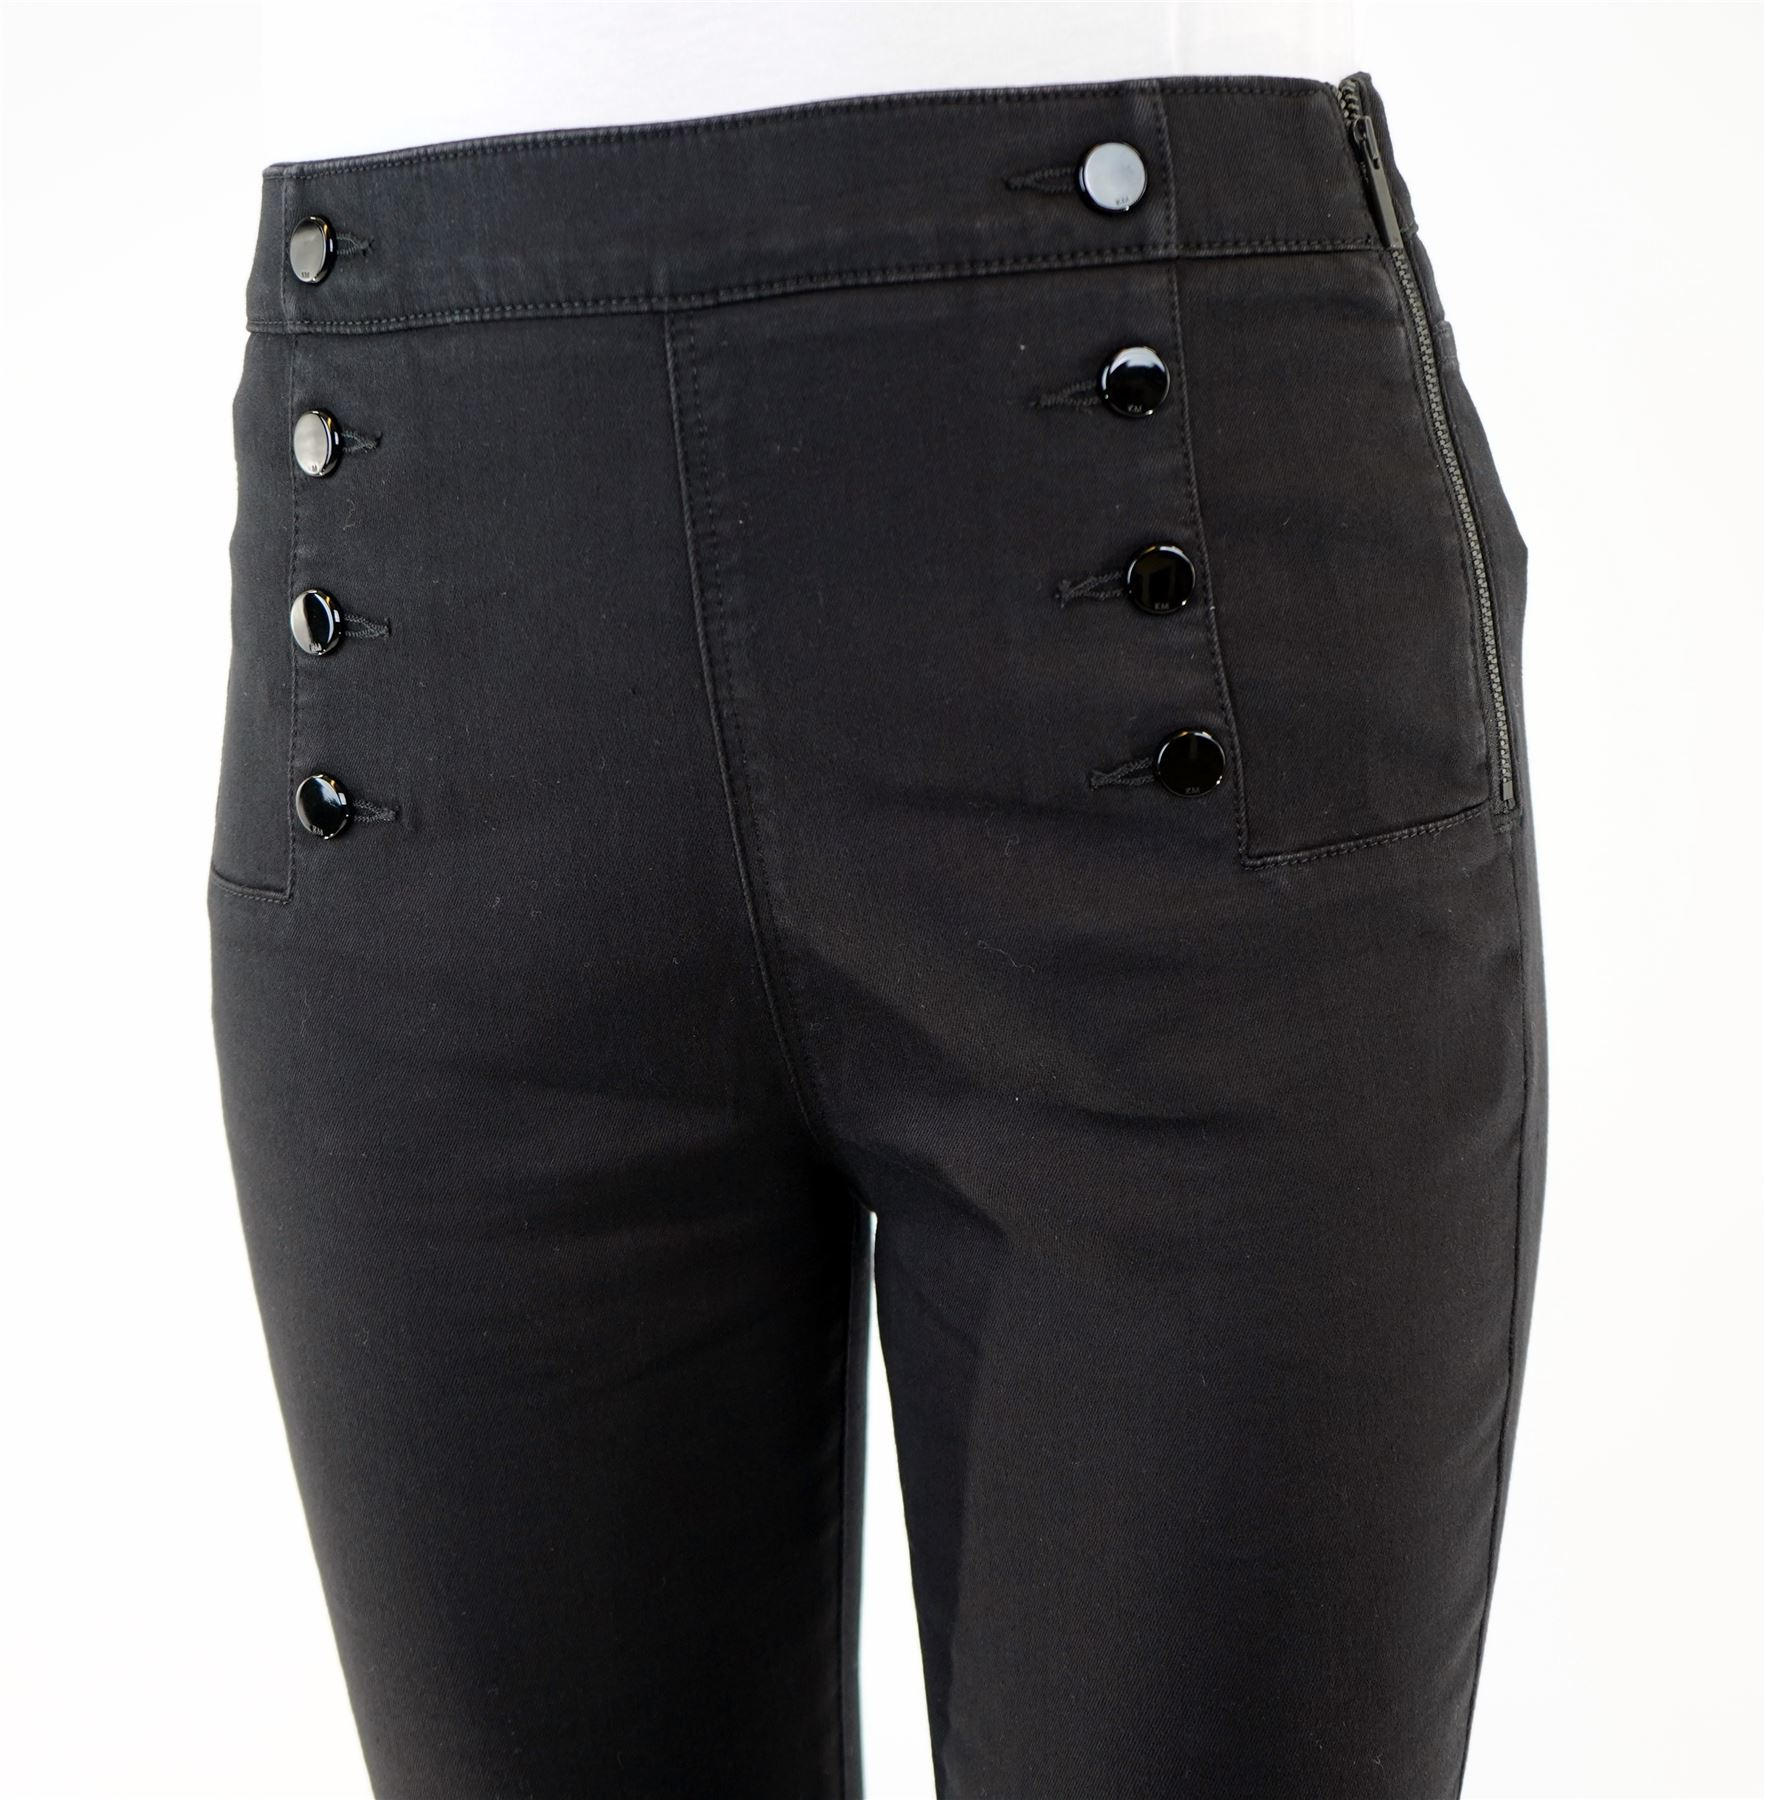 thumbnail 36 - Karen Millen Womens Casual Black Denim Button Jegging Ladies Jean Stylish Gift